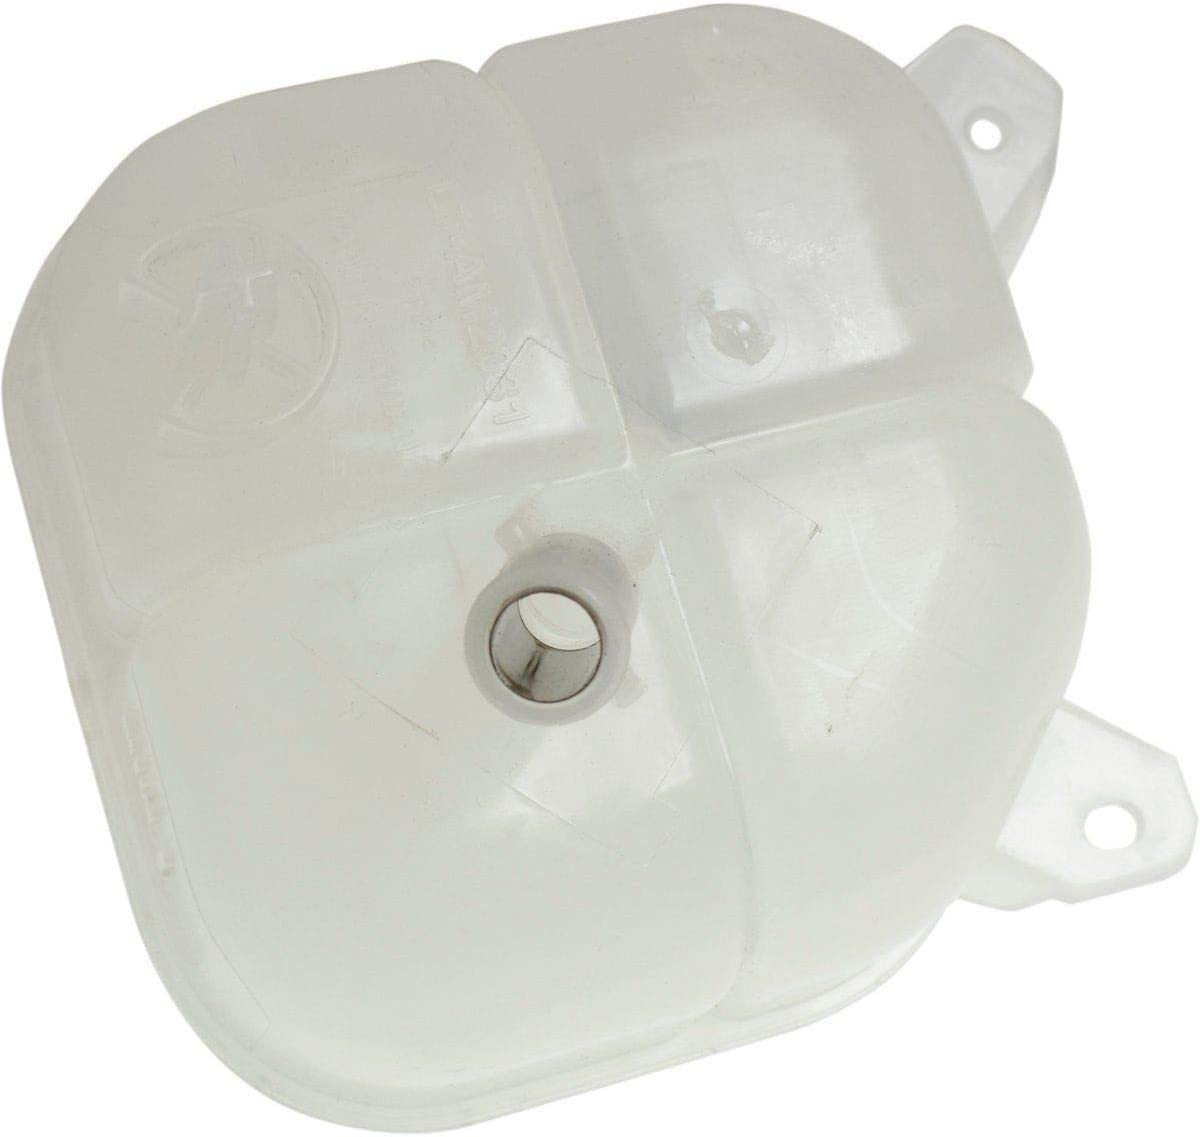 New Engine Coolant Recovery Tank For 2014-2018 Jeep Wrangler /& 2015-2017 Chrysler 200 With Cap CH3014161 68102155AD